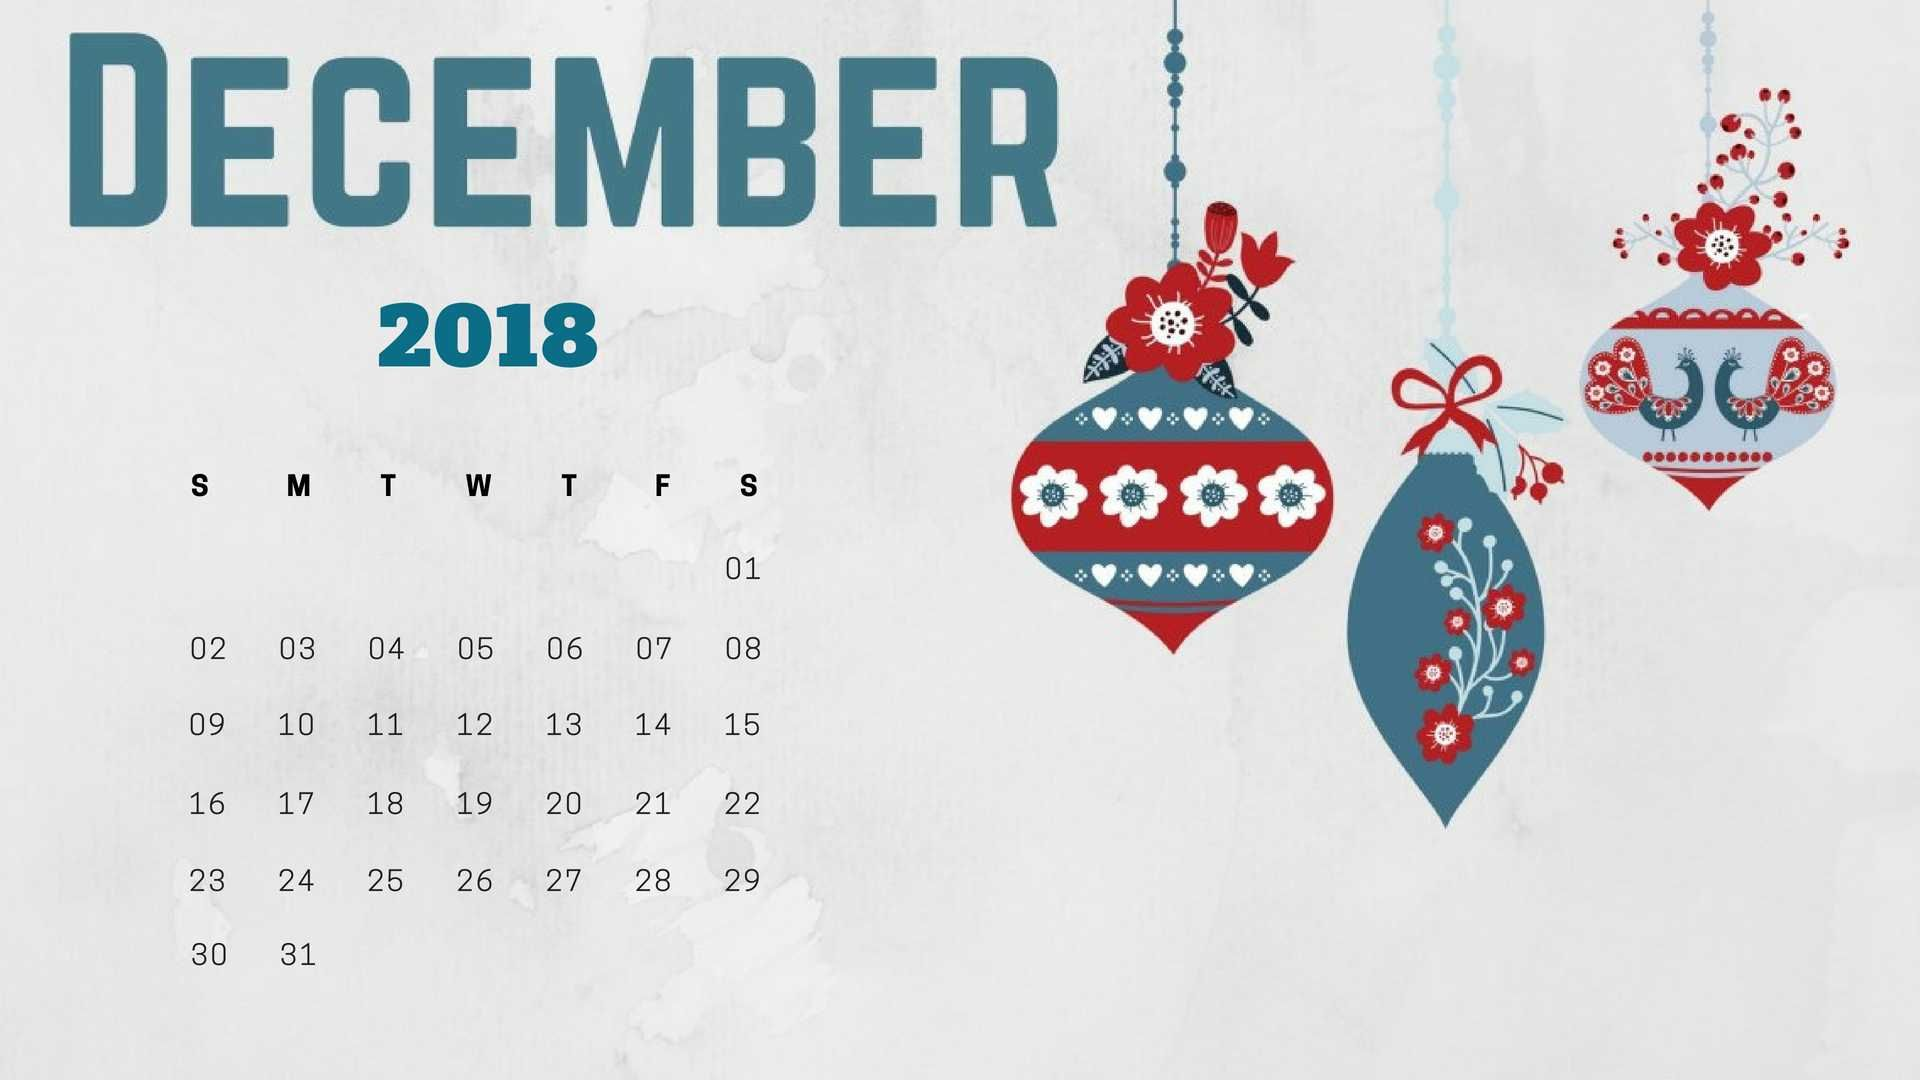 December 2019 Calendar Laptop Wallpaper December 2018 Calendar Wallpaper for Desktop Background Laptop and